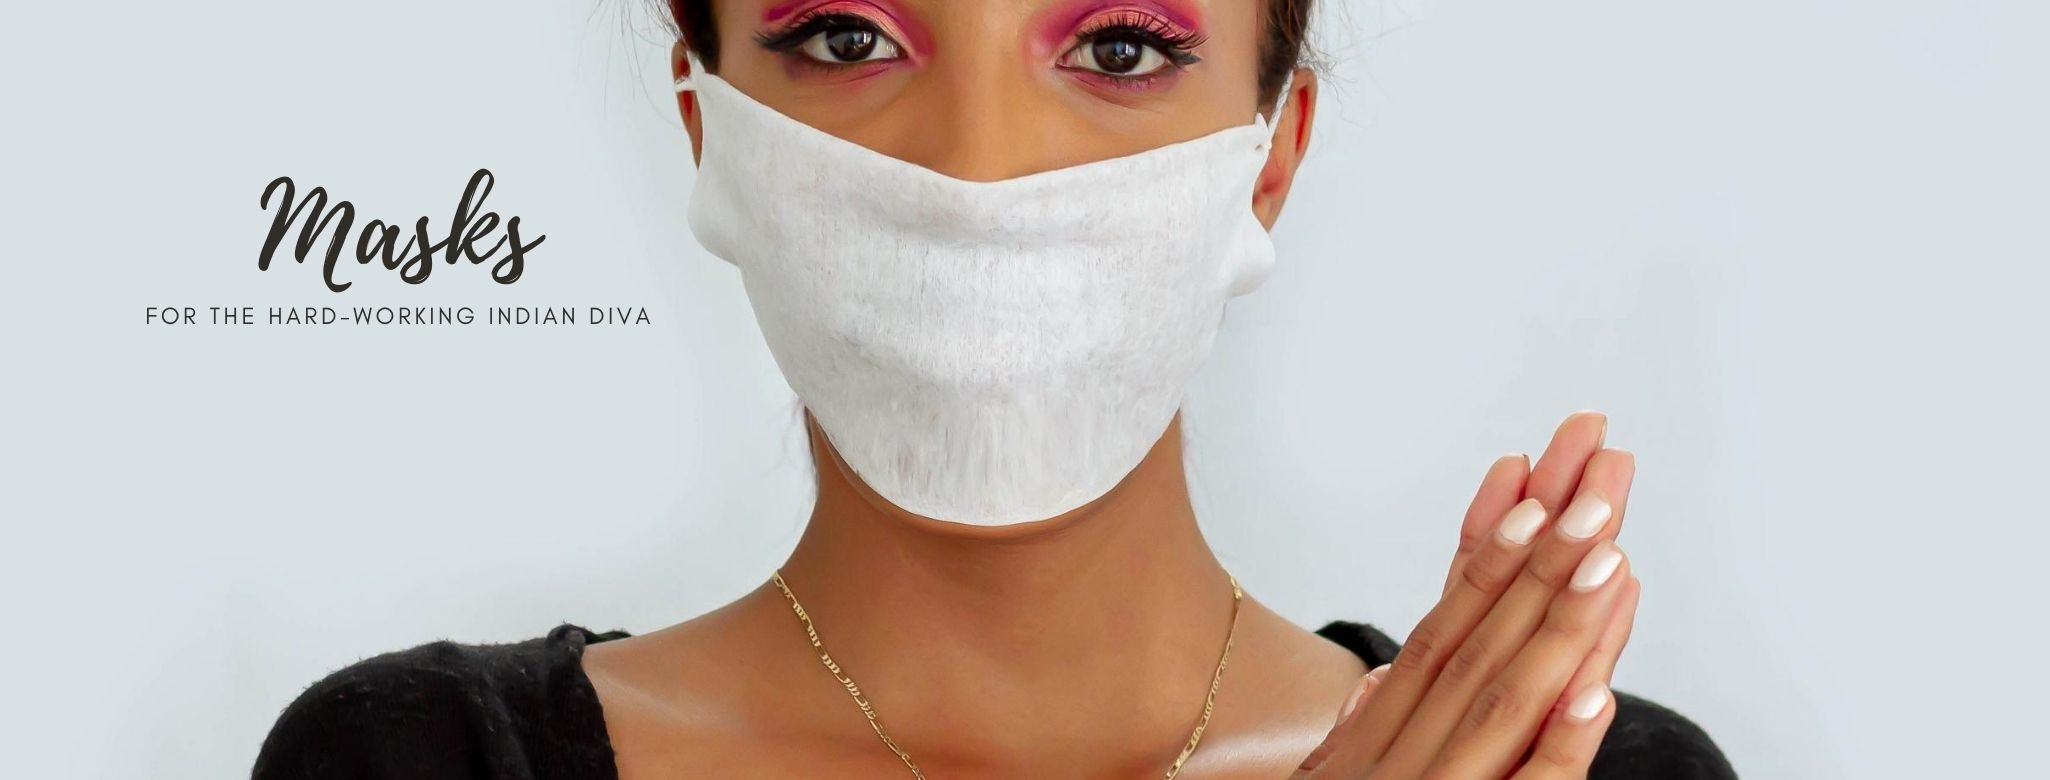 Top 5 Women's Fashion Brands That Sell Masks Online (2020)